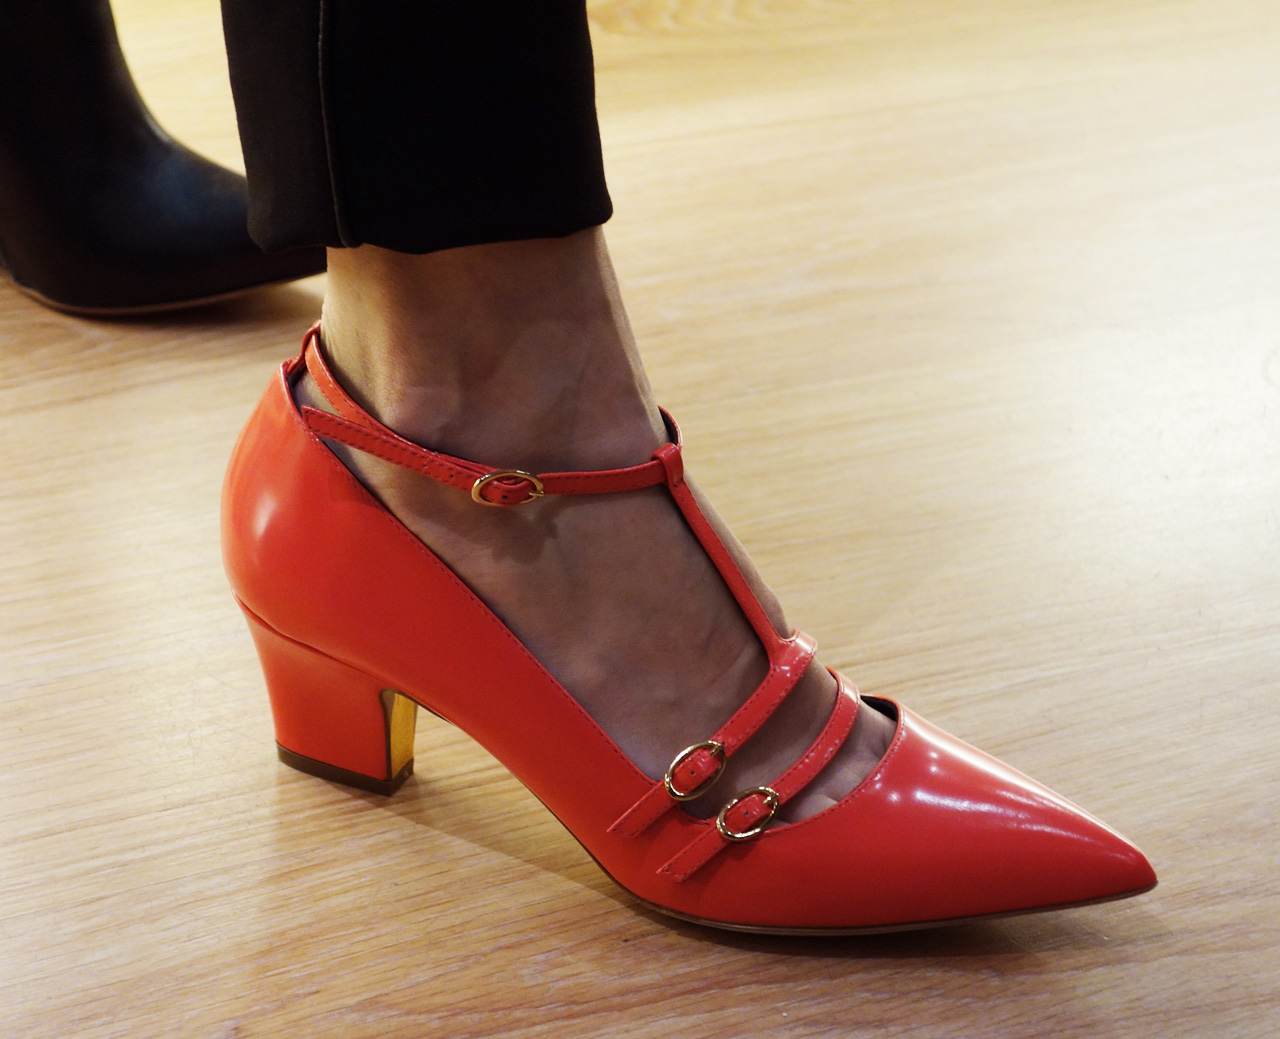 Rupert-Sanderson-Winter-2013-shoes-0-5-salome